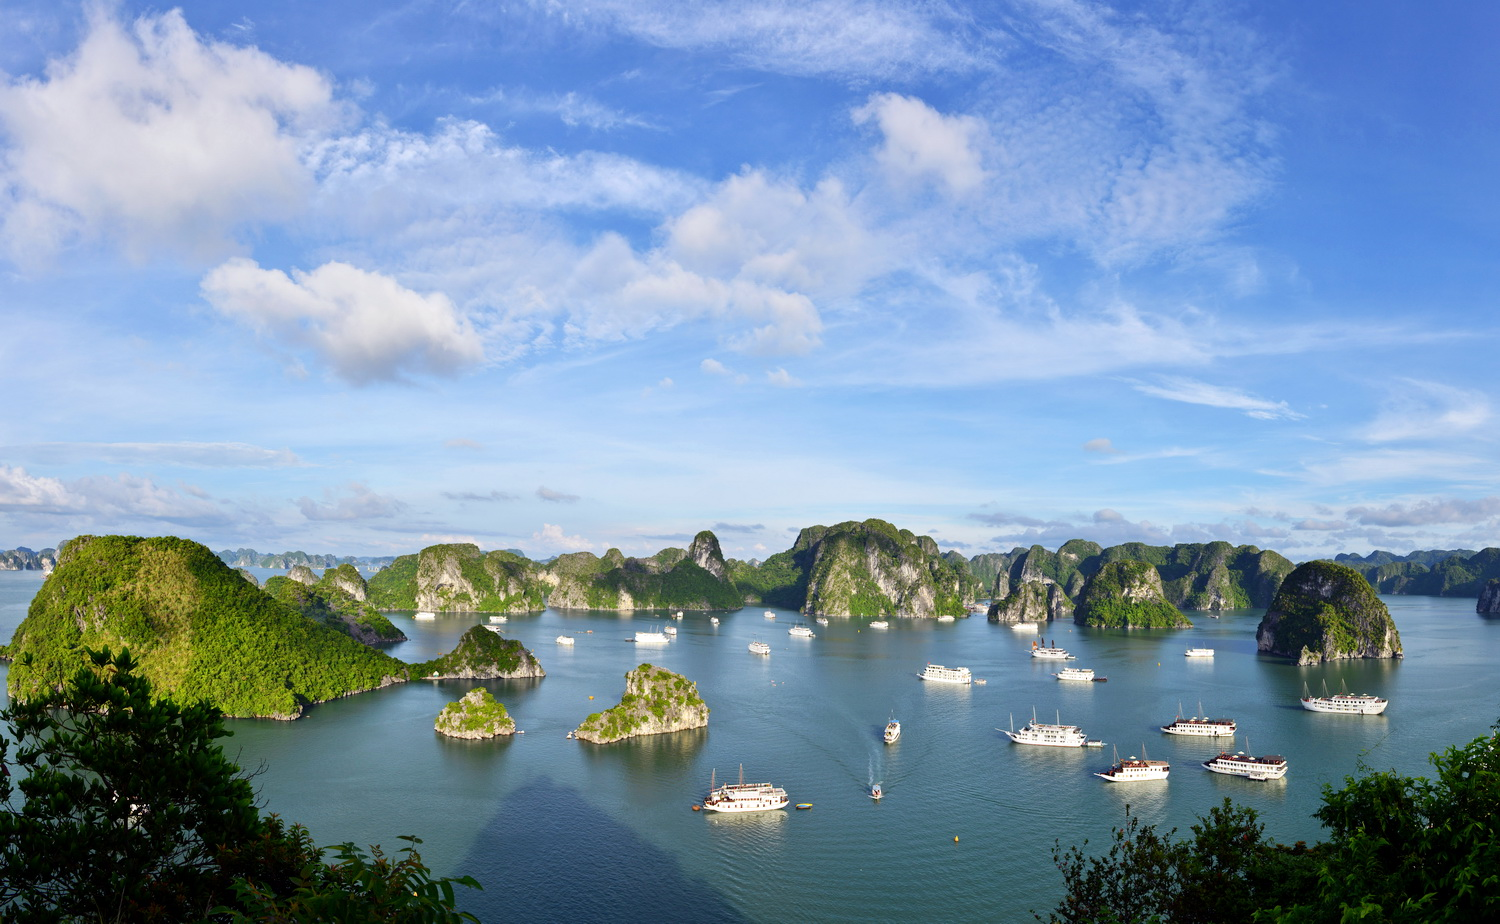 Ha Noi - Hoa Lu - Tam Coc - Ninh Binh - Trang An - Bai Dinh Pagoda - Ninh Binh - Ha Long Bay - Cat Ba Island - Ha Long Bay - Ha Noi 5 Days - 4 Nights